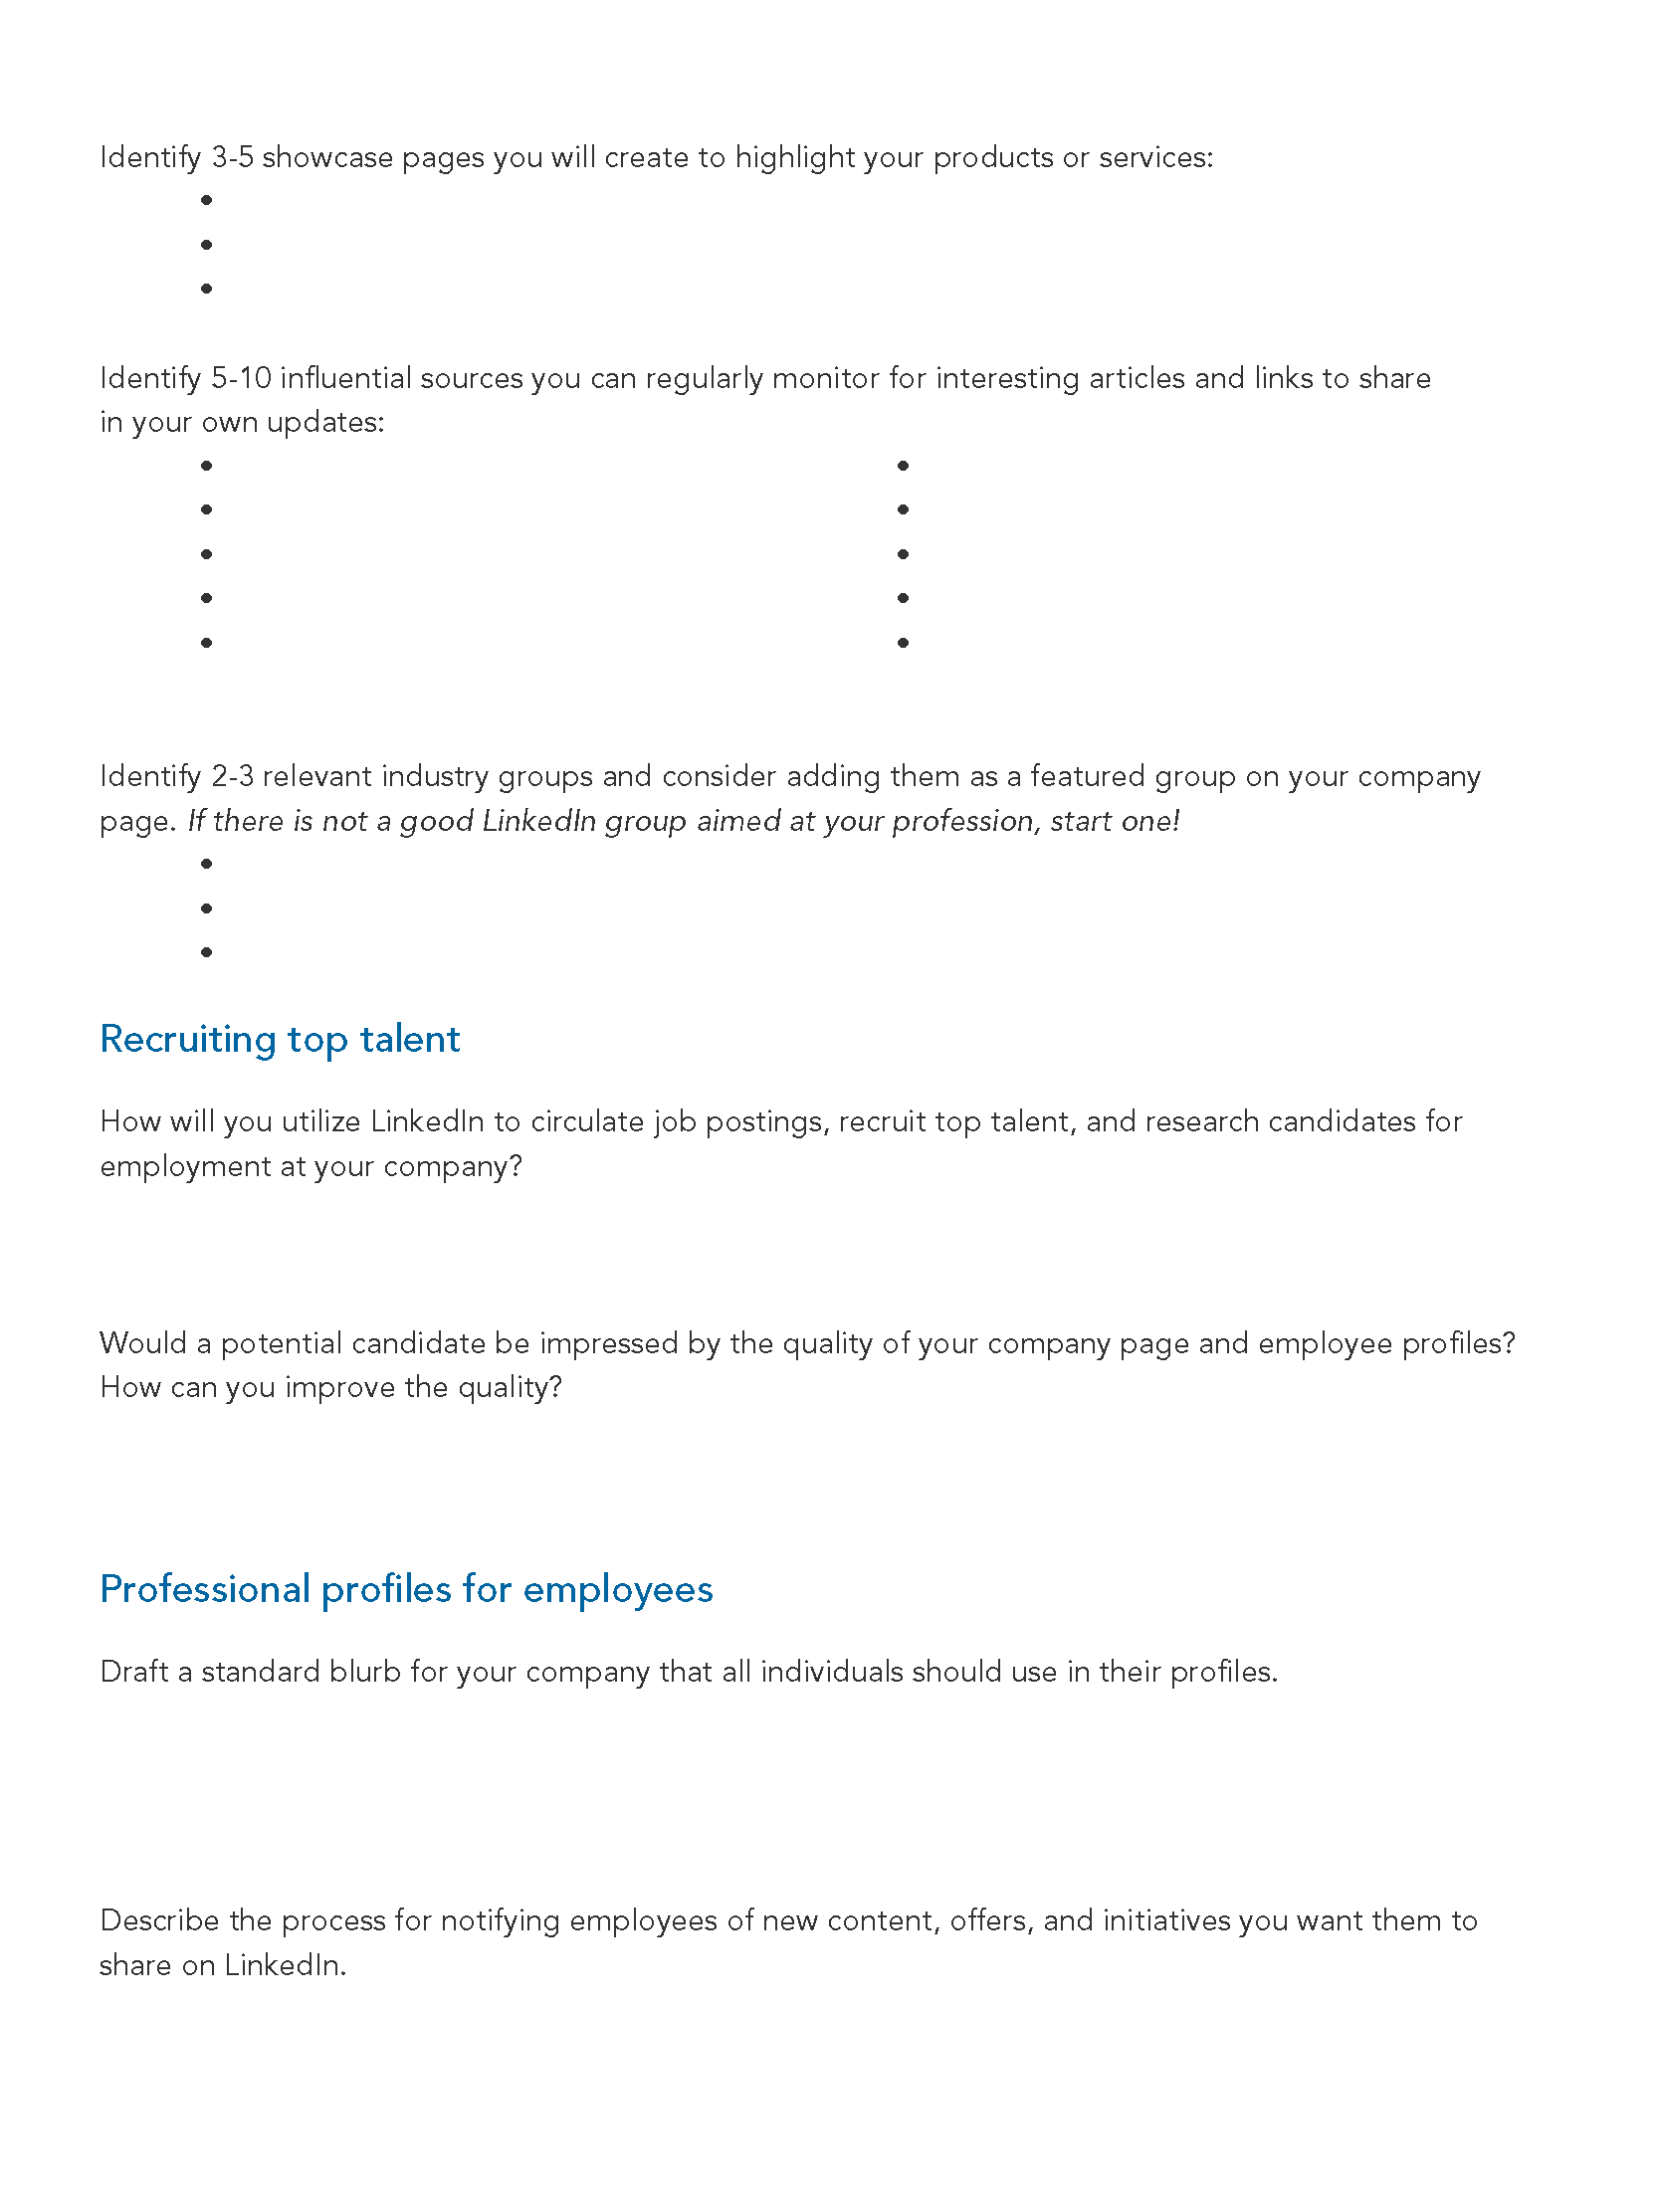 LinkedIn Strategy Worksheet - Page 2